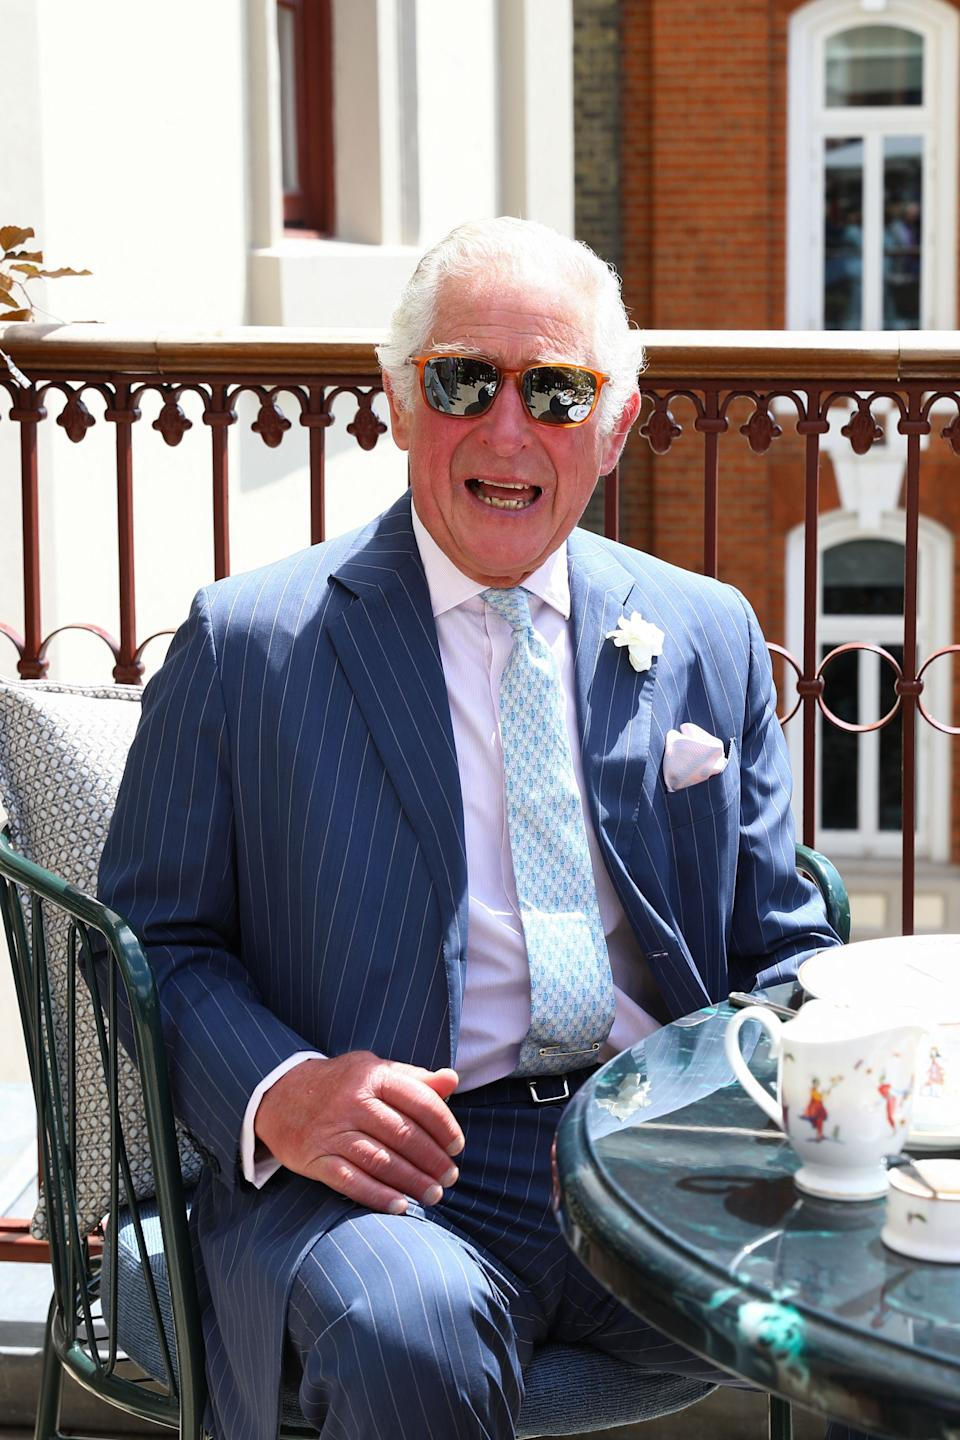 Britain's Prince Charles, Prince of Wales takes tea on the terrace during a visit to the Theatre Royal Drury Lane following its refurbishment in London on June 23, 2021. (Photo by Tim P. Whitby / POOL / AFP) (Photo by TIM P. WHITBY/POOL/AFP via Getty Images)